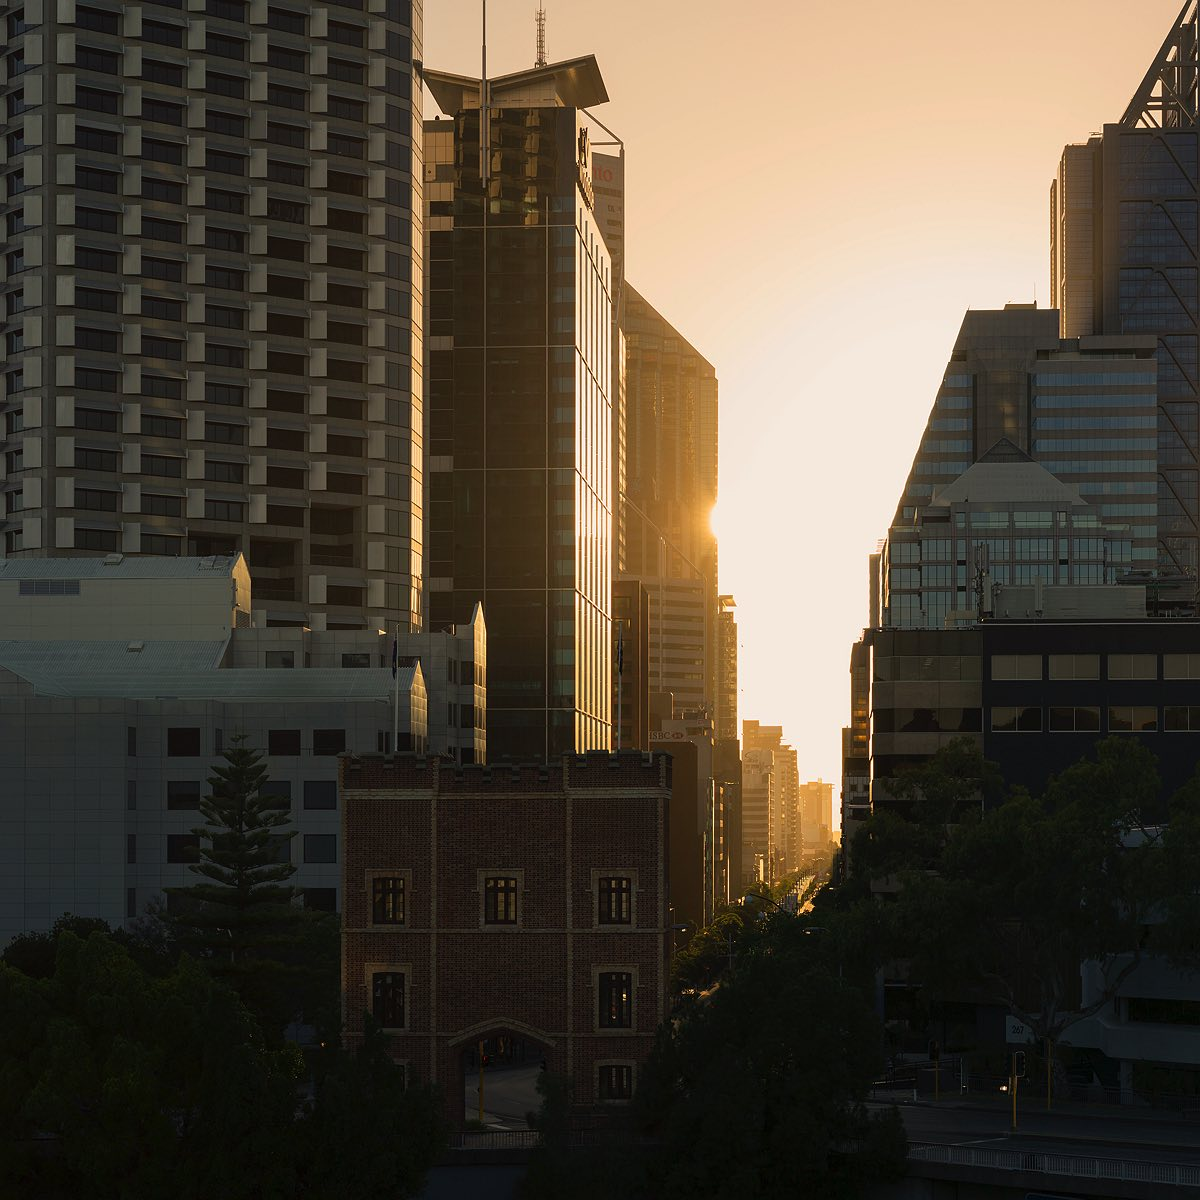 st-georges-terrace-sunrise-perth-2017